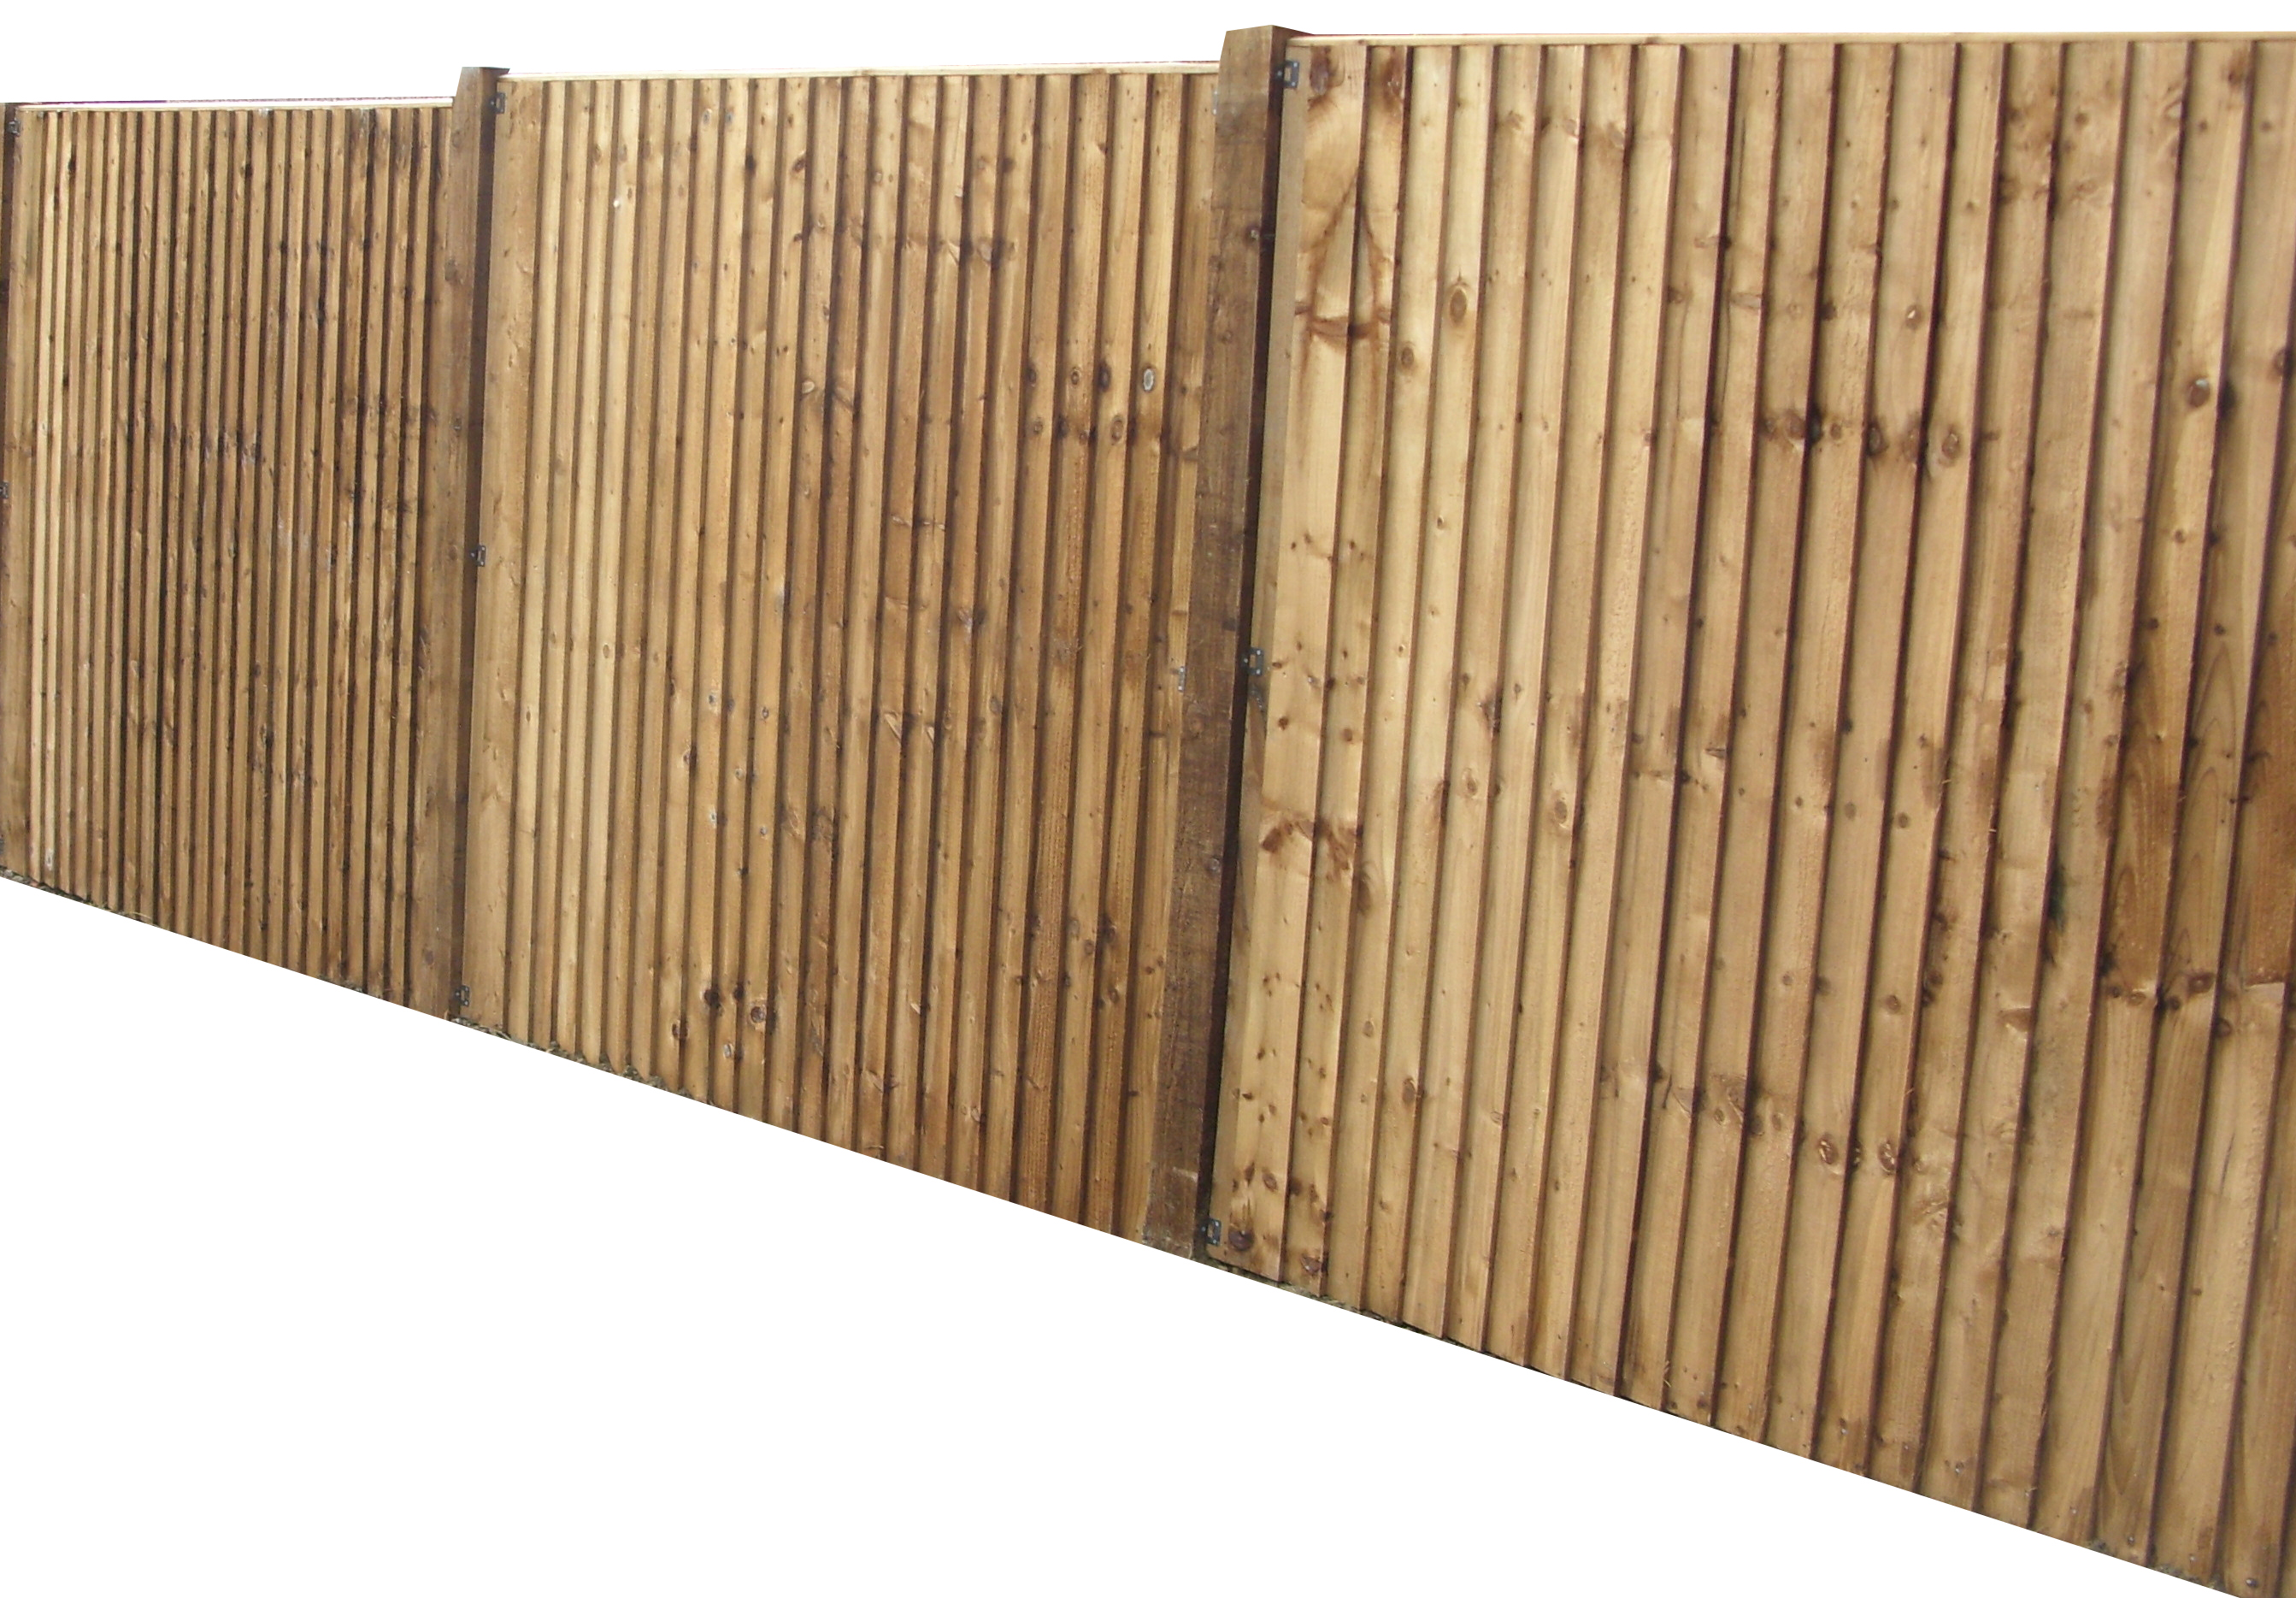 Closeboard panels, no capping on timber posts